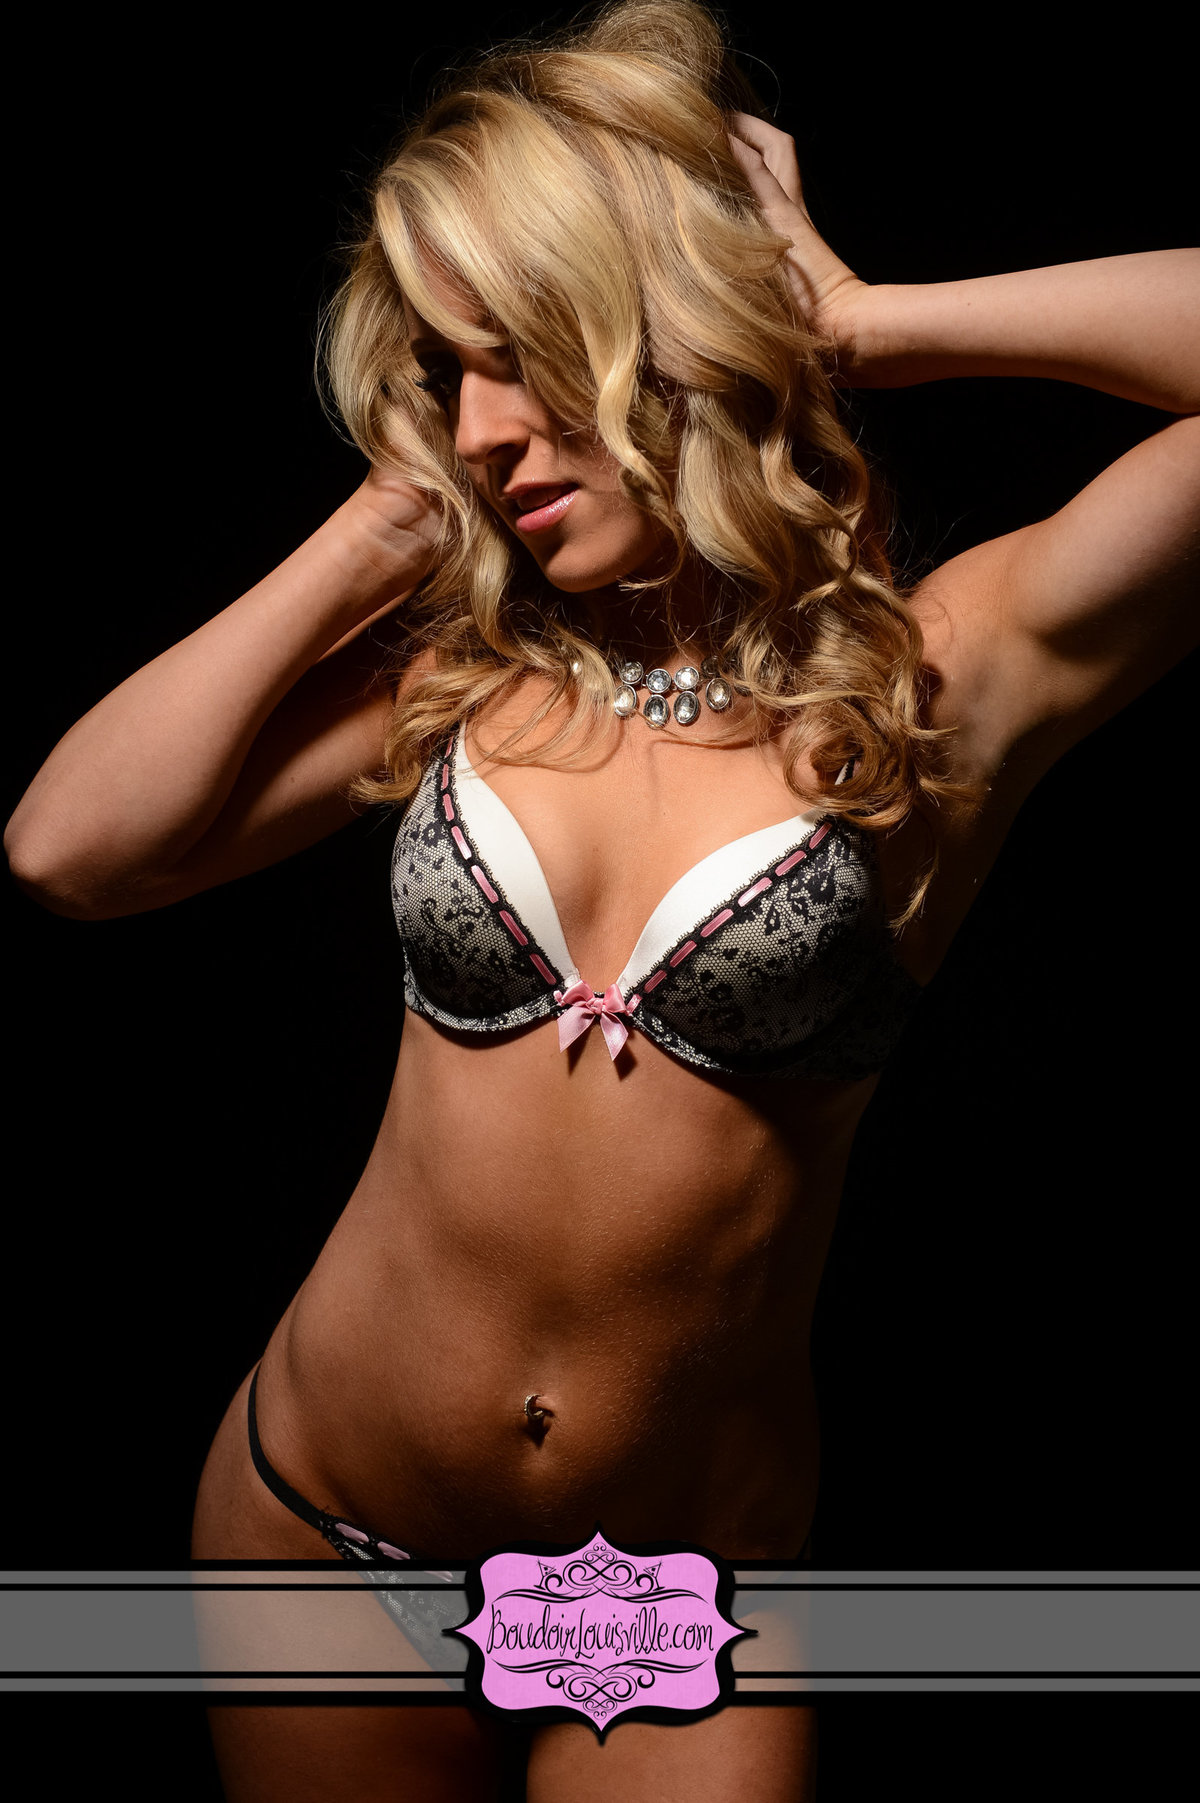 Boudoir Louisville - Boudoir Photography Studio-258